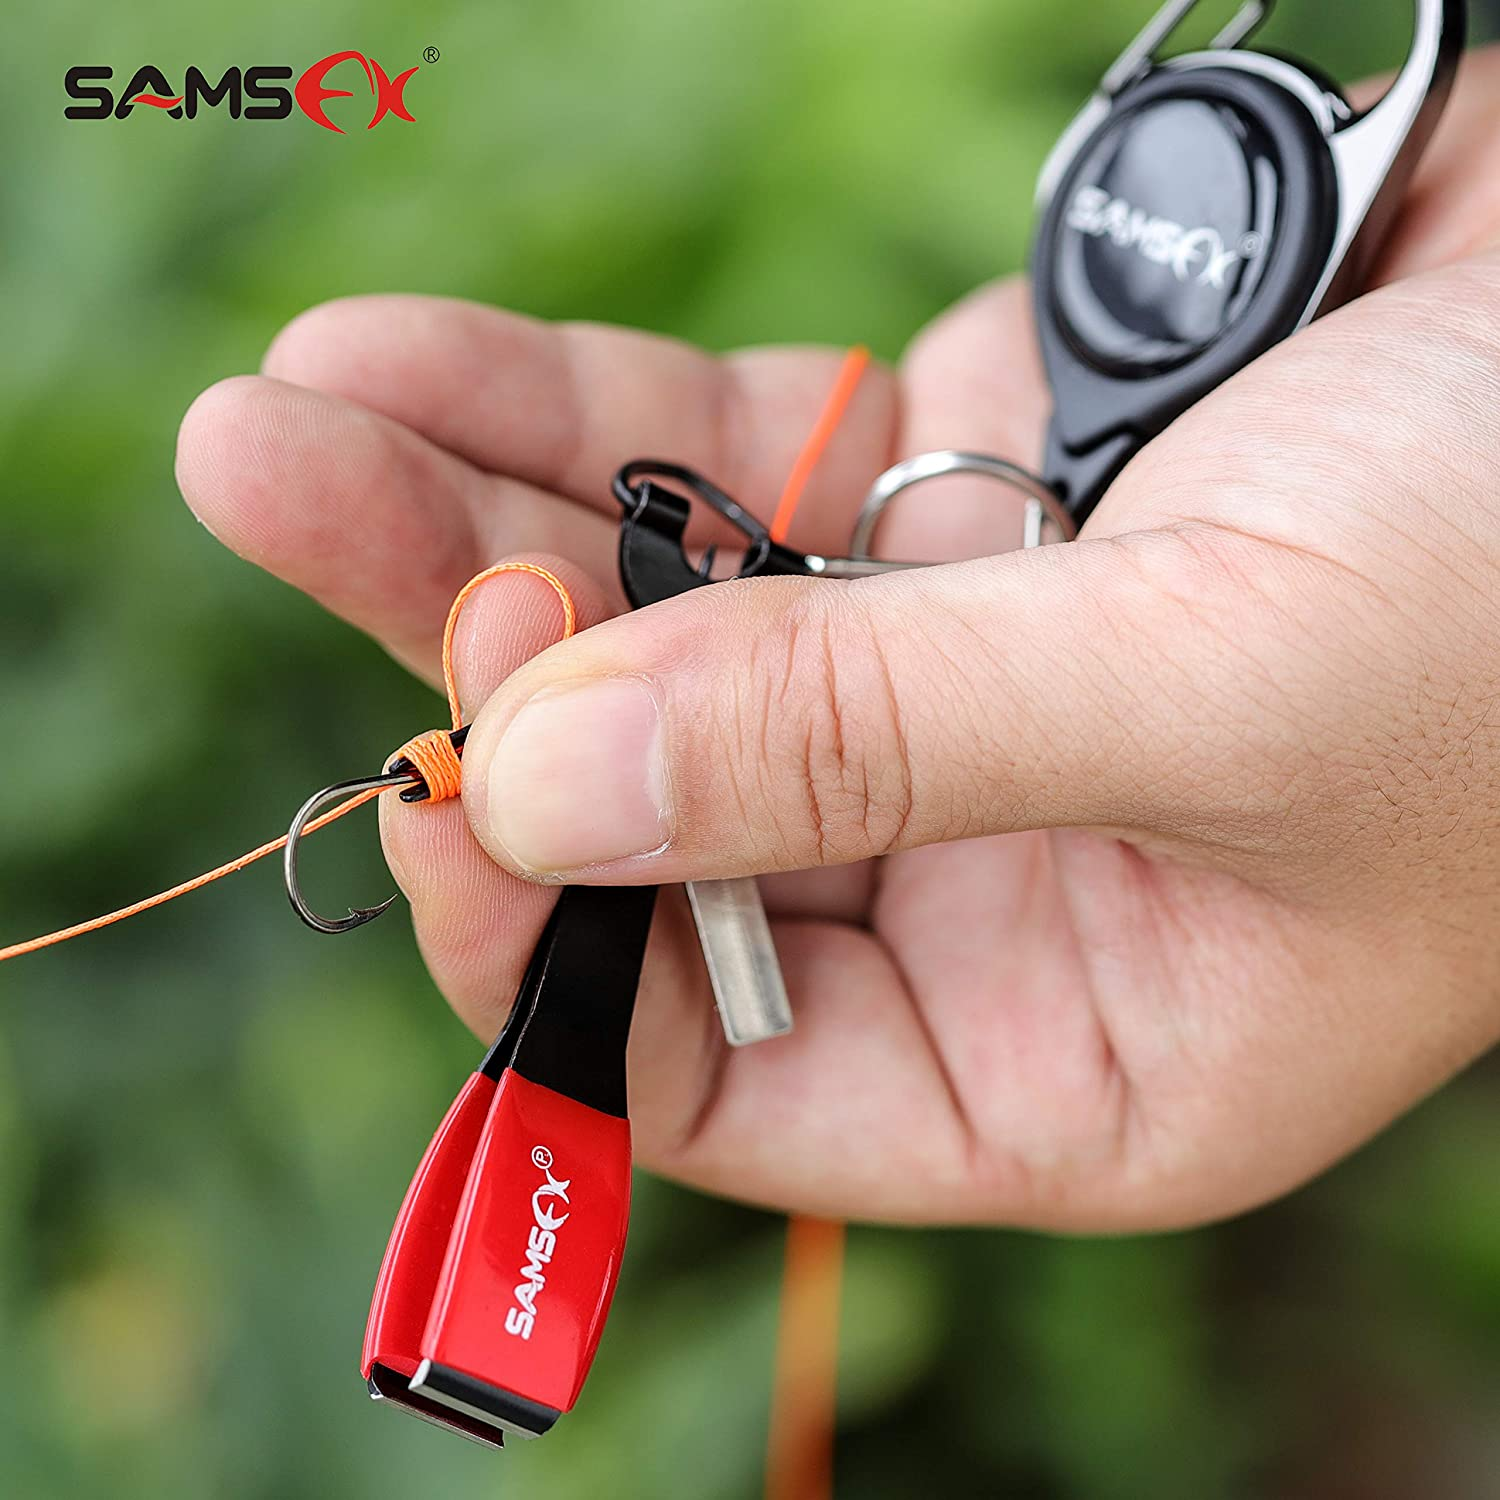 Quick Knot Tying Tool 4 in 1 Fishing Mono Line Clipper W// Retractor Kit US